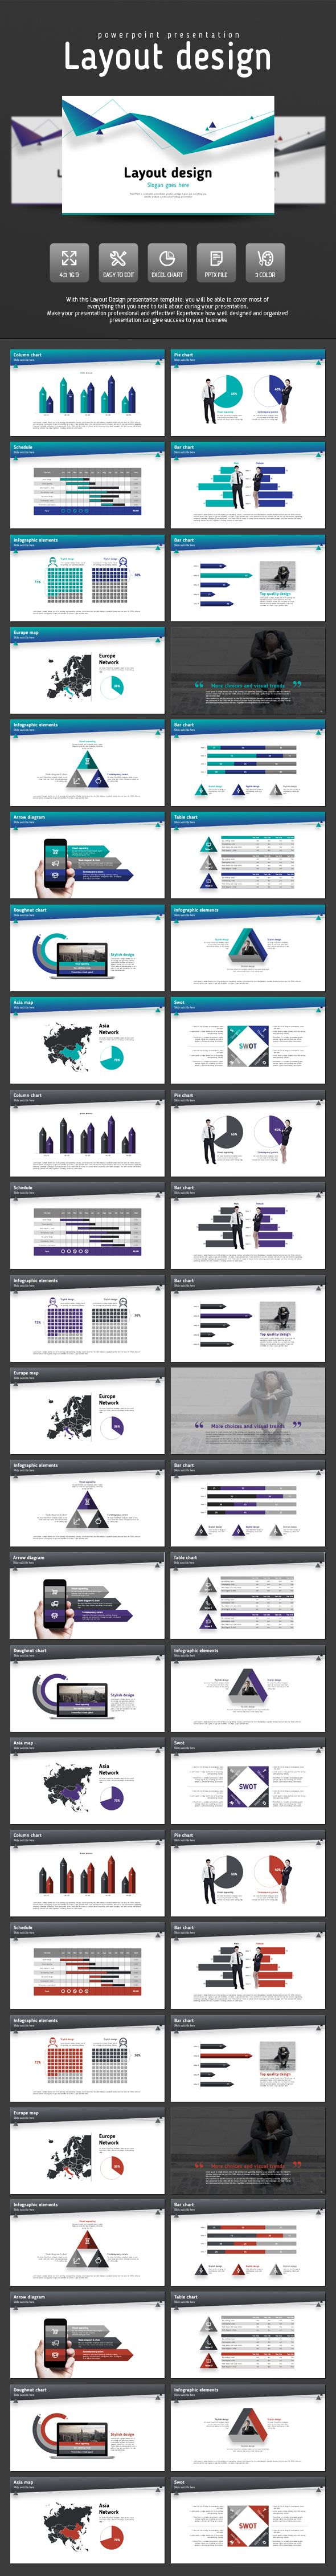 Layout Design PowerPoint Template #design #slides Download: http://graphicriver.net/item/layout-design/14033671?ref=ksioks